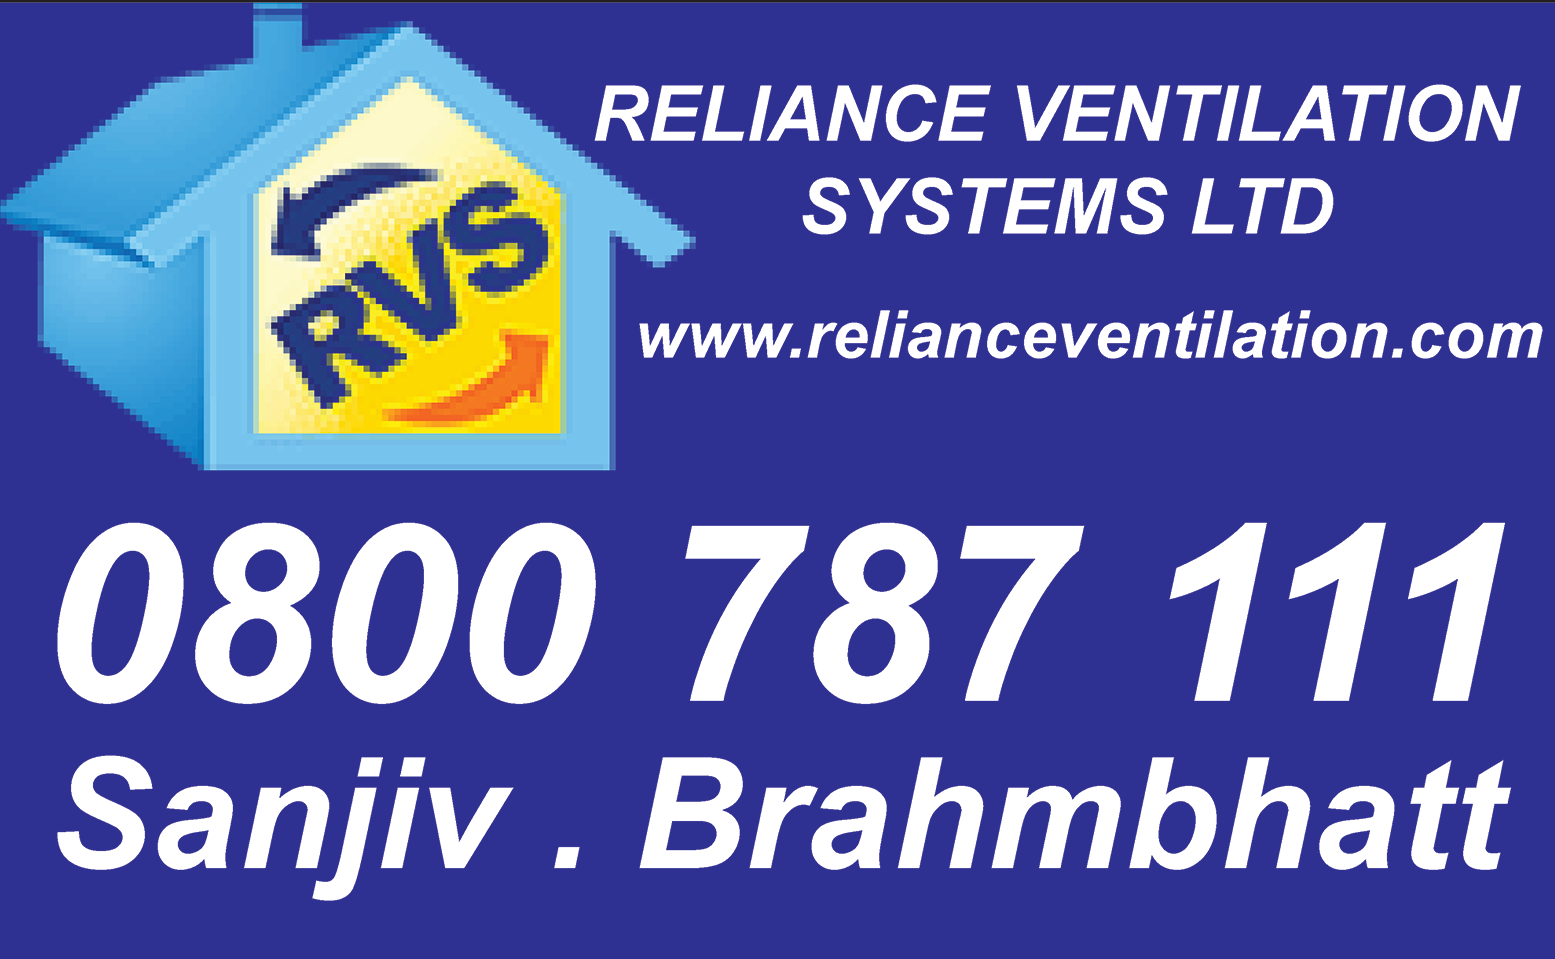 Reliance ventilation systems